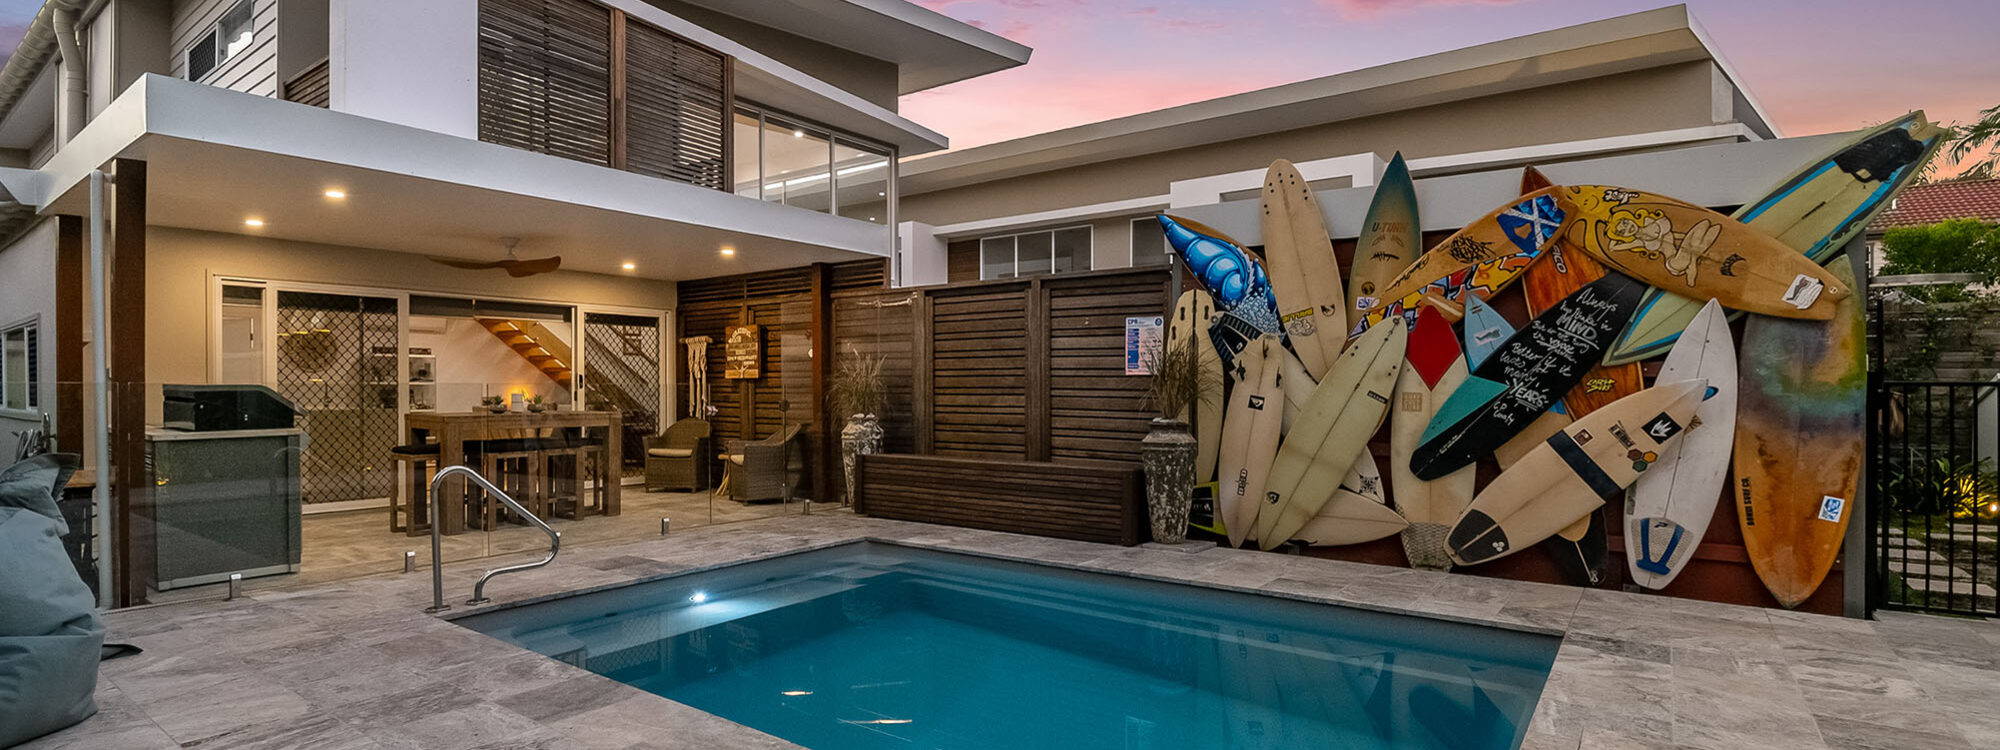 Byron Sunrise - Byron Bay - Pool and Surfboard Feature Wall